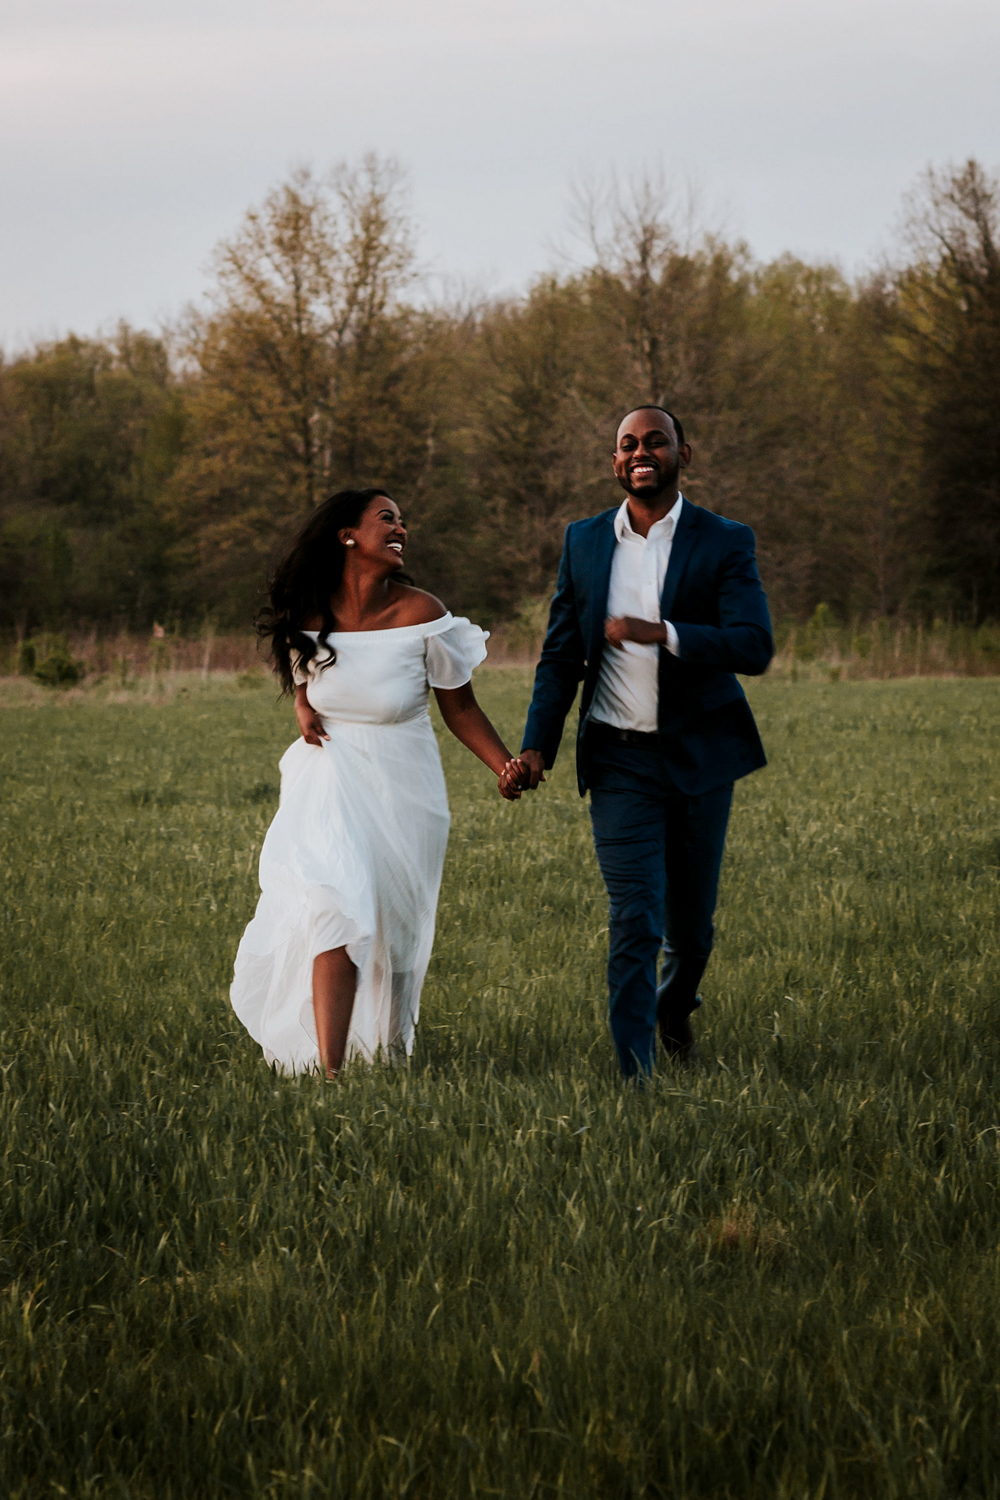 TaylorLaurenPhoto_Columbus_Ohio_Wedding_Engagement_Portrait_Photography-112.jpg